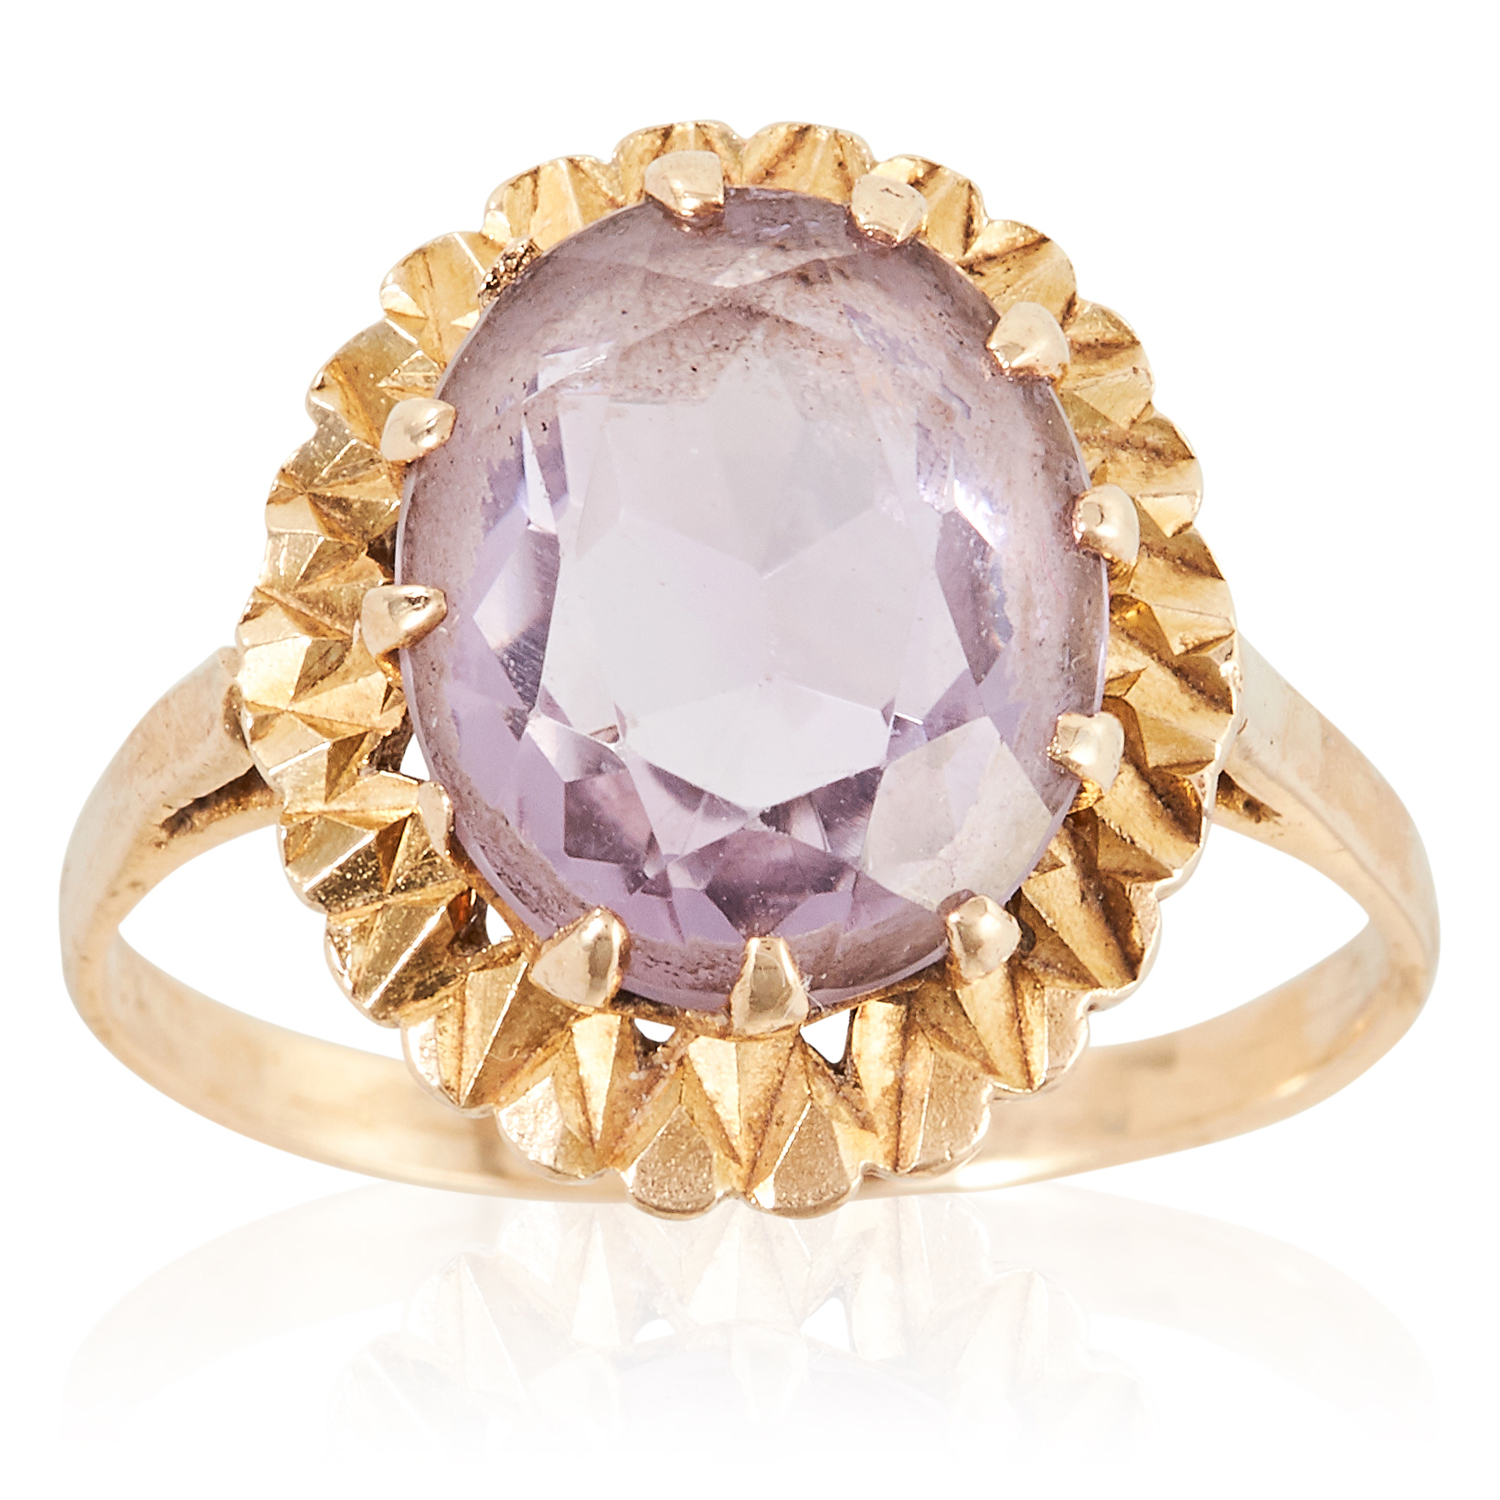 AN AMETHYST DRESS RING in yellow gold, set with an oval cut amethyst, stamped 9C, size R / 8.5, 4.